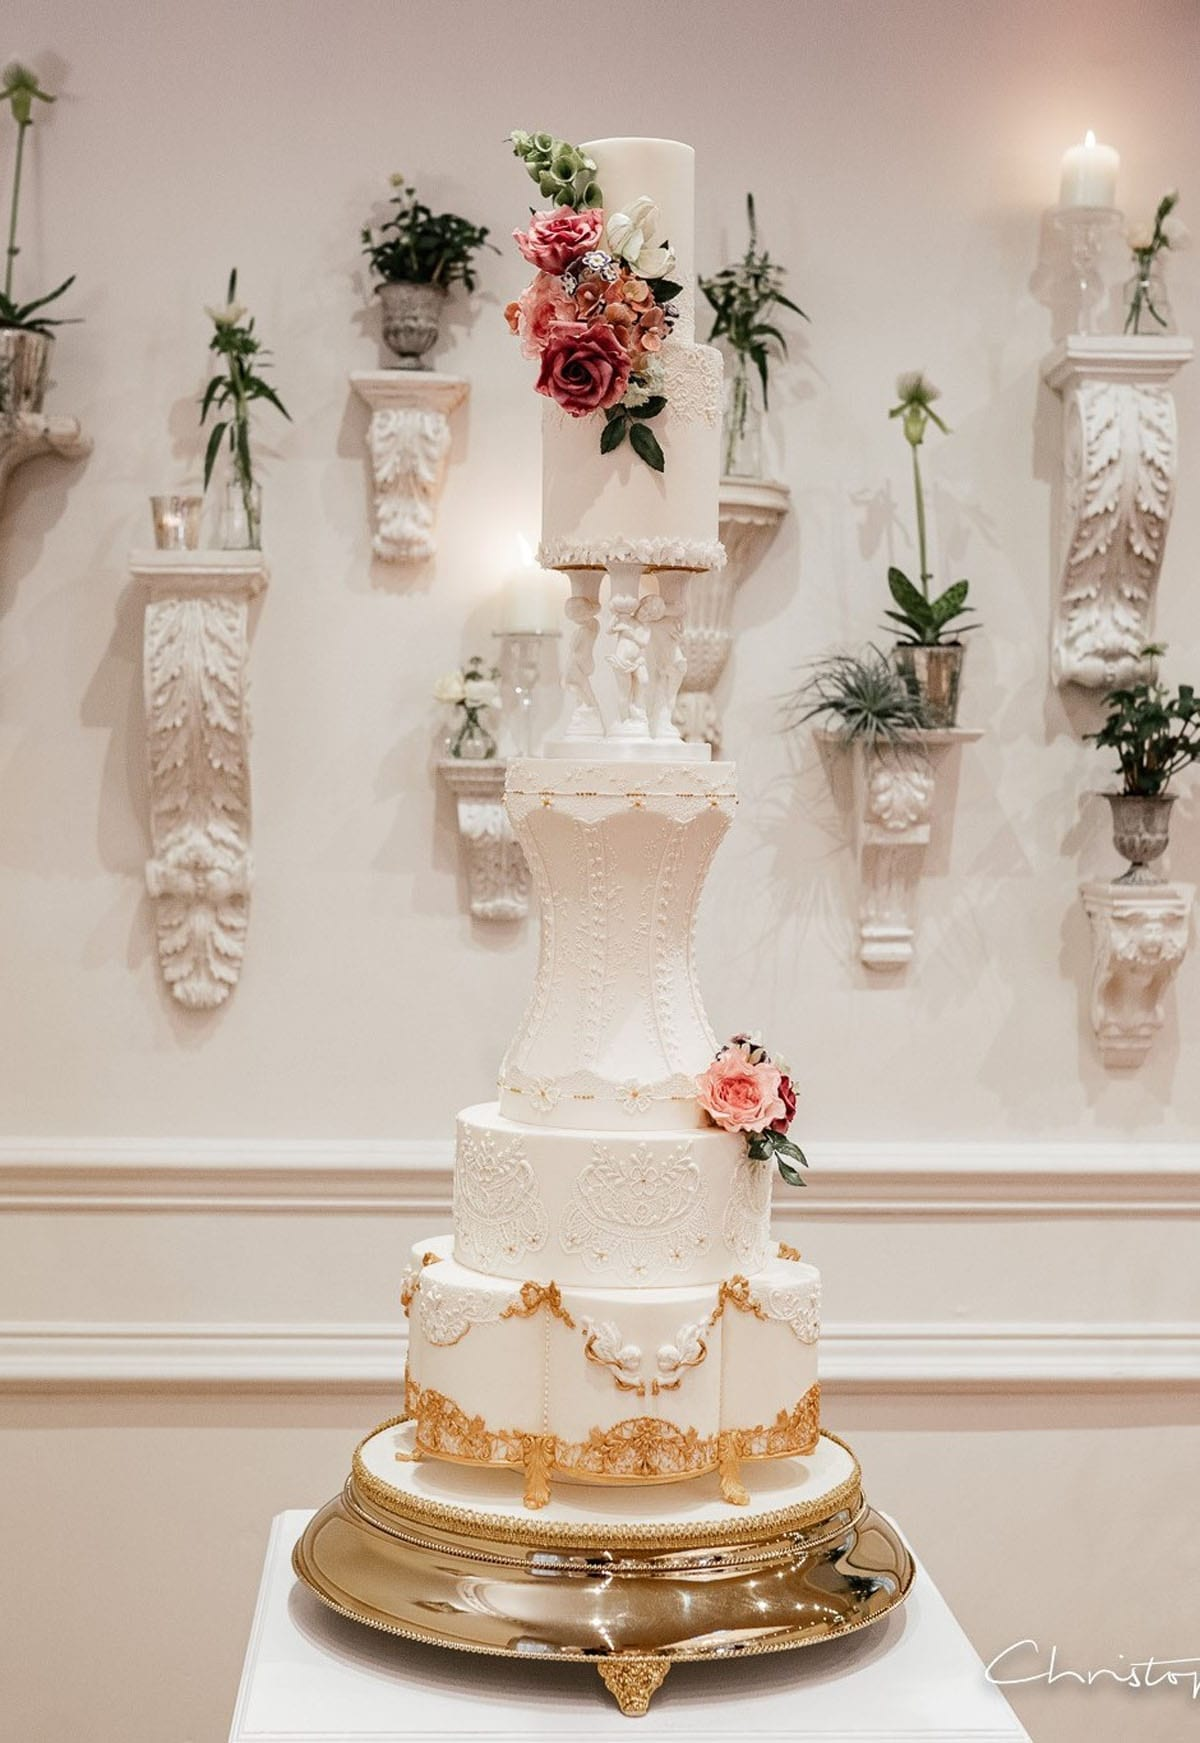 Huge Wedding Cake with Royal icing